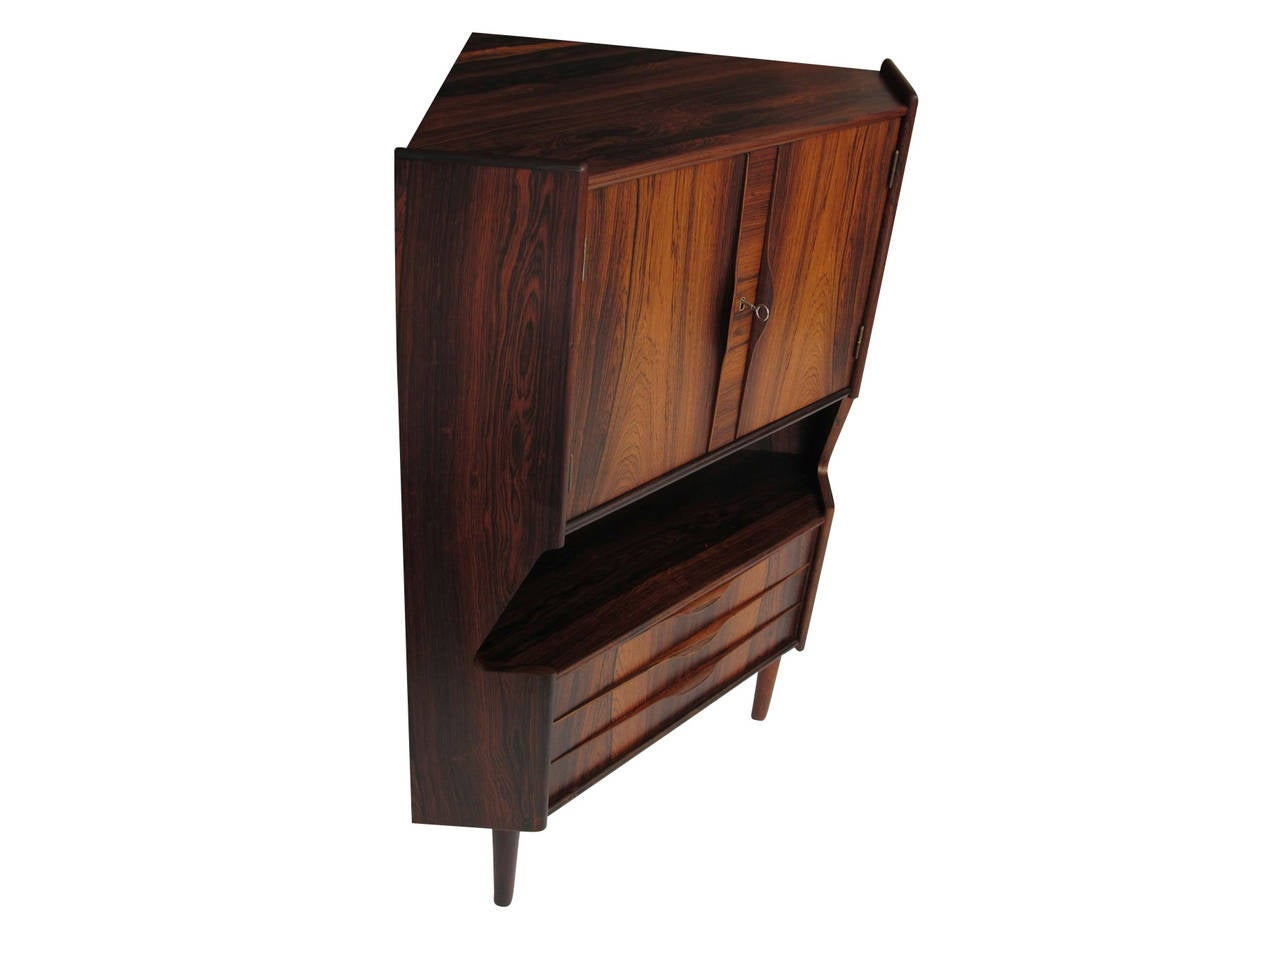 Danish Omann Jun Rosewood Bar Cabinet For Sale 4  sc 1 st  1stDibs & Danish Omann Jun Rosewood Bar Cabinet at 1stdibs